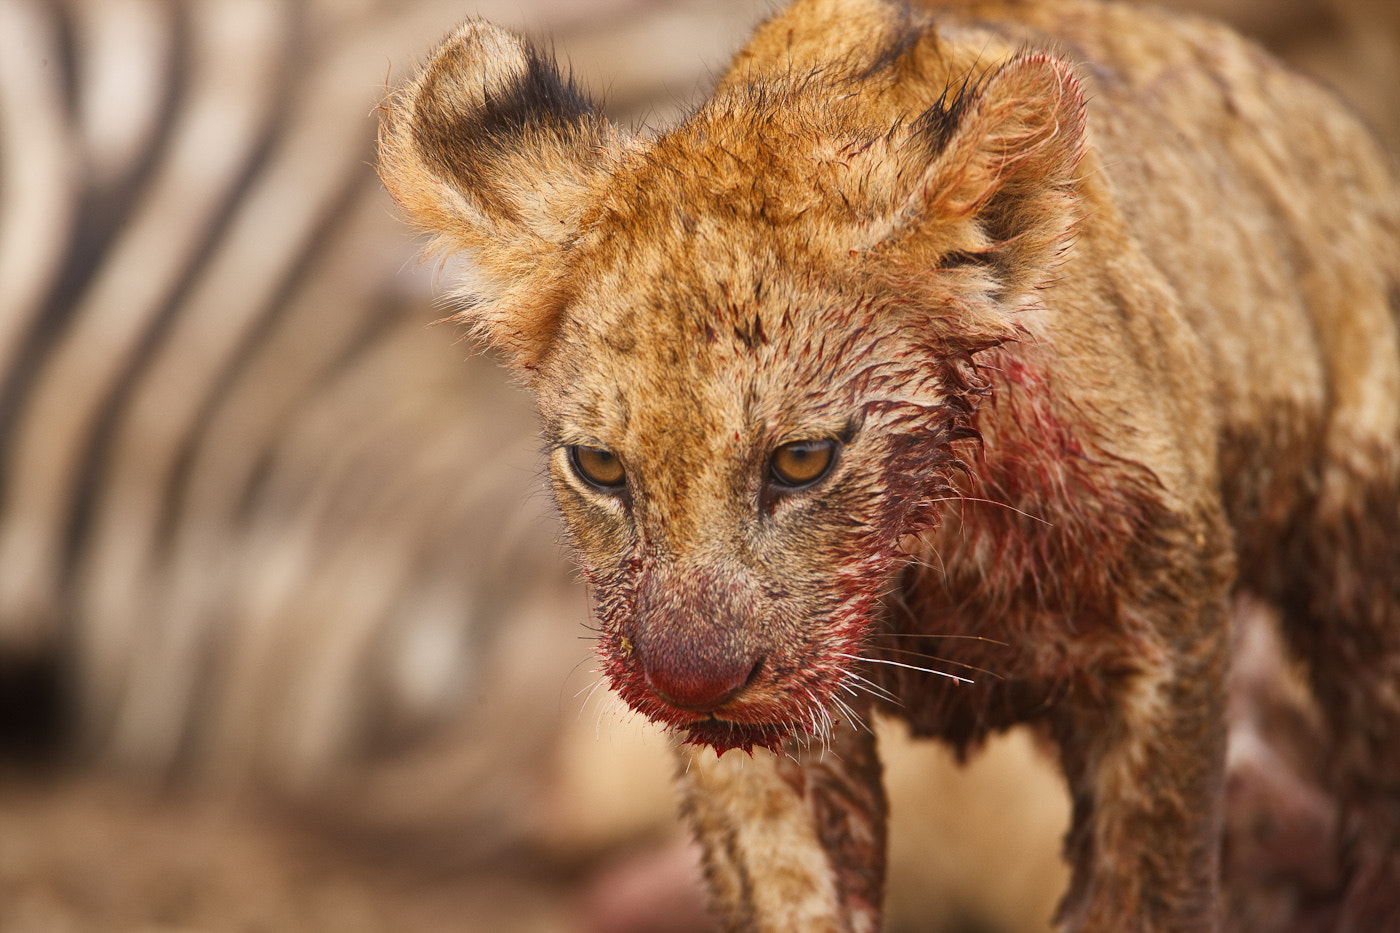 Photograph Bloody Cub by Per-Gunnar Ostby on 500px